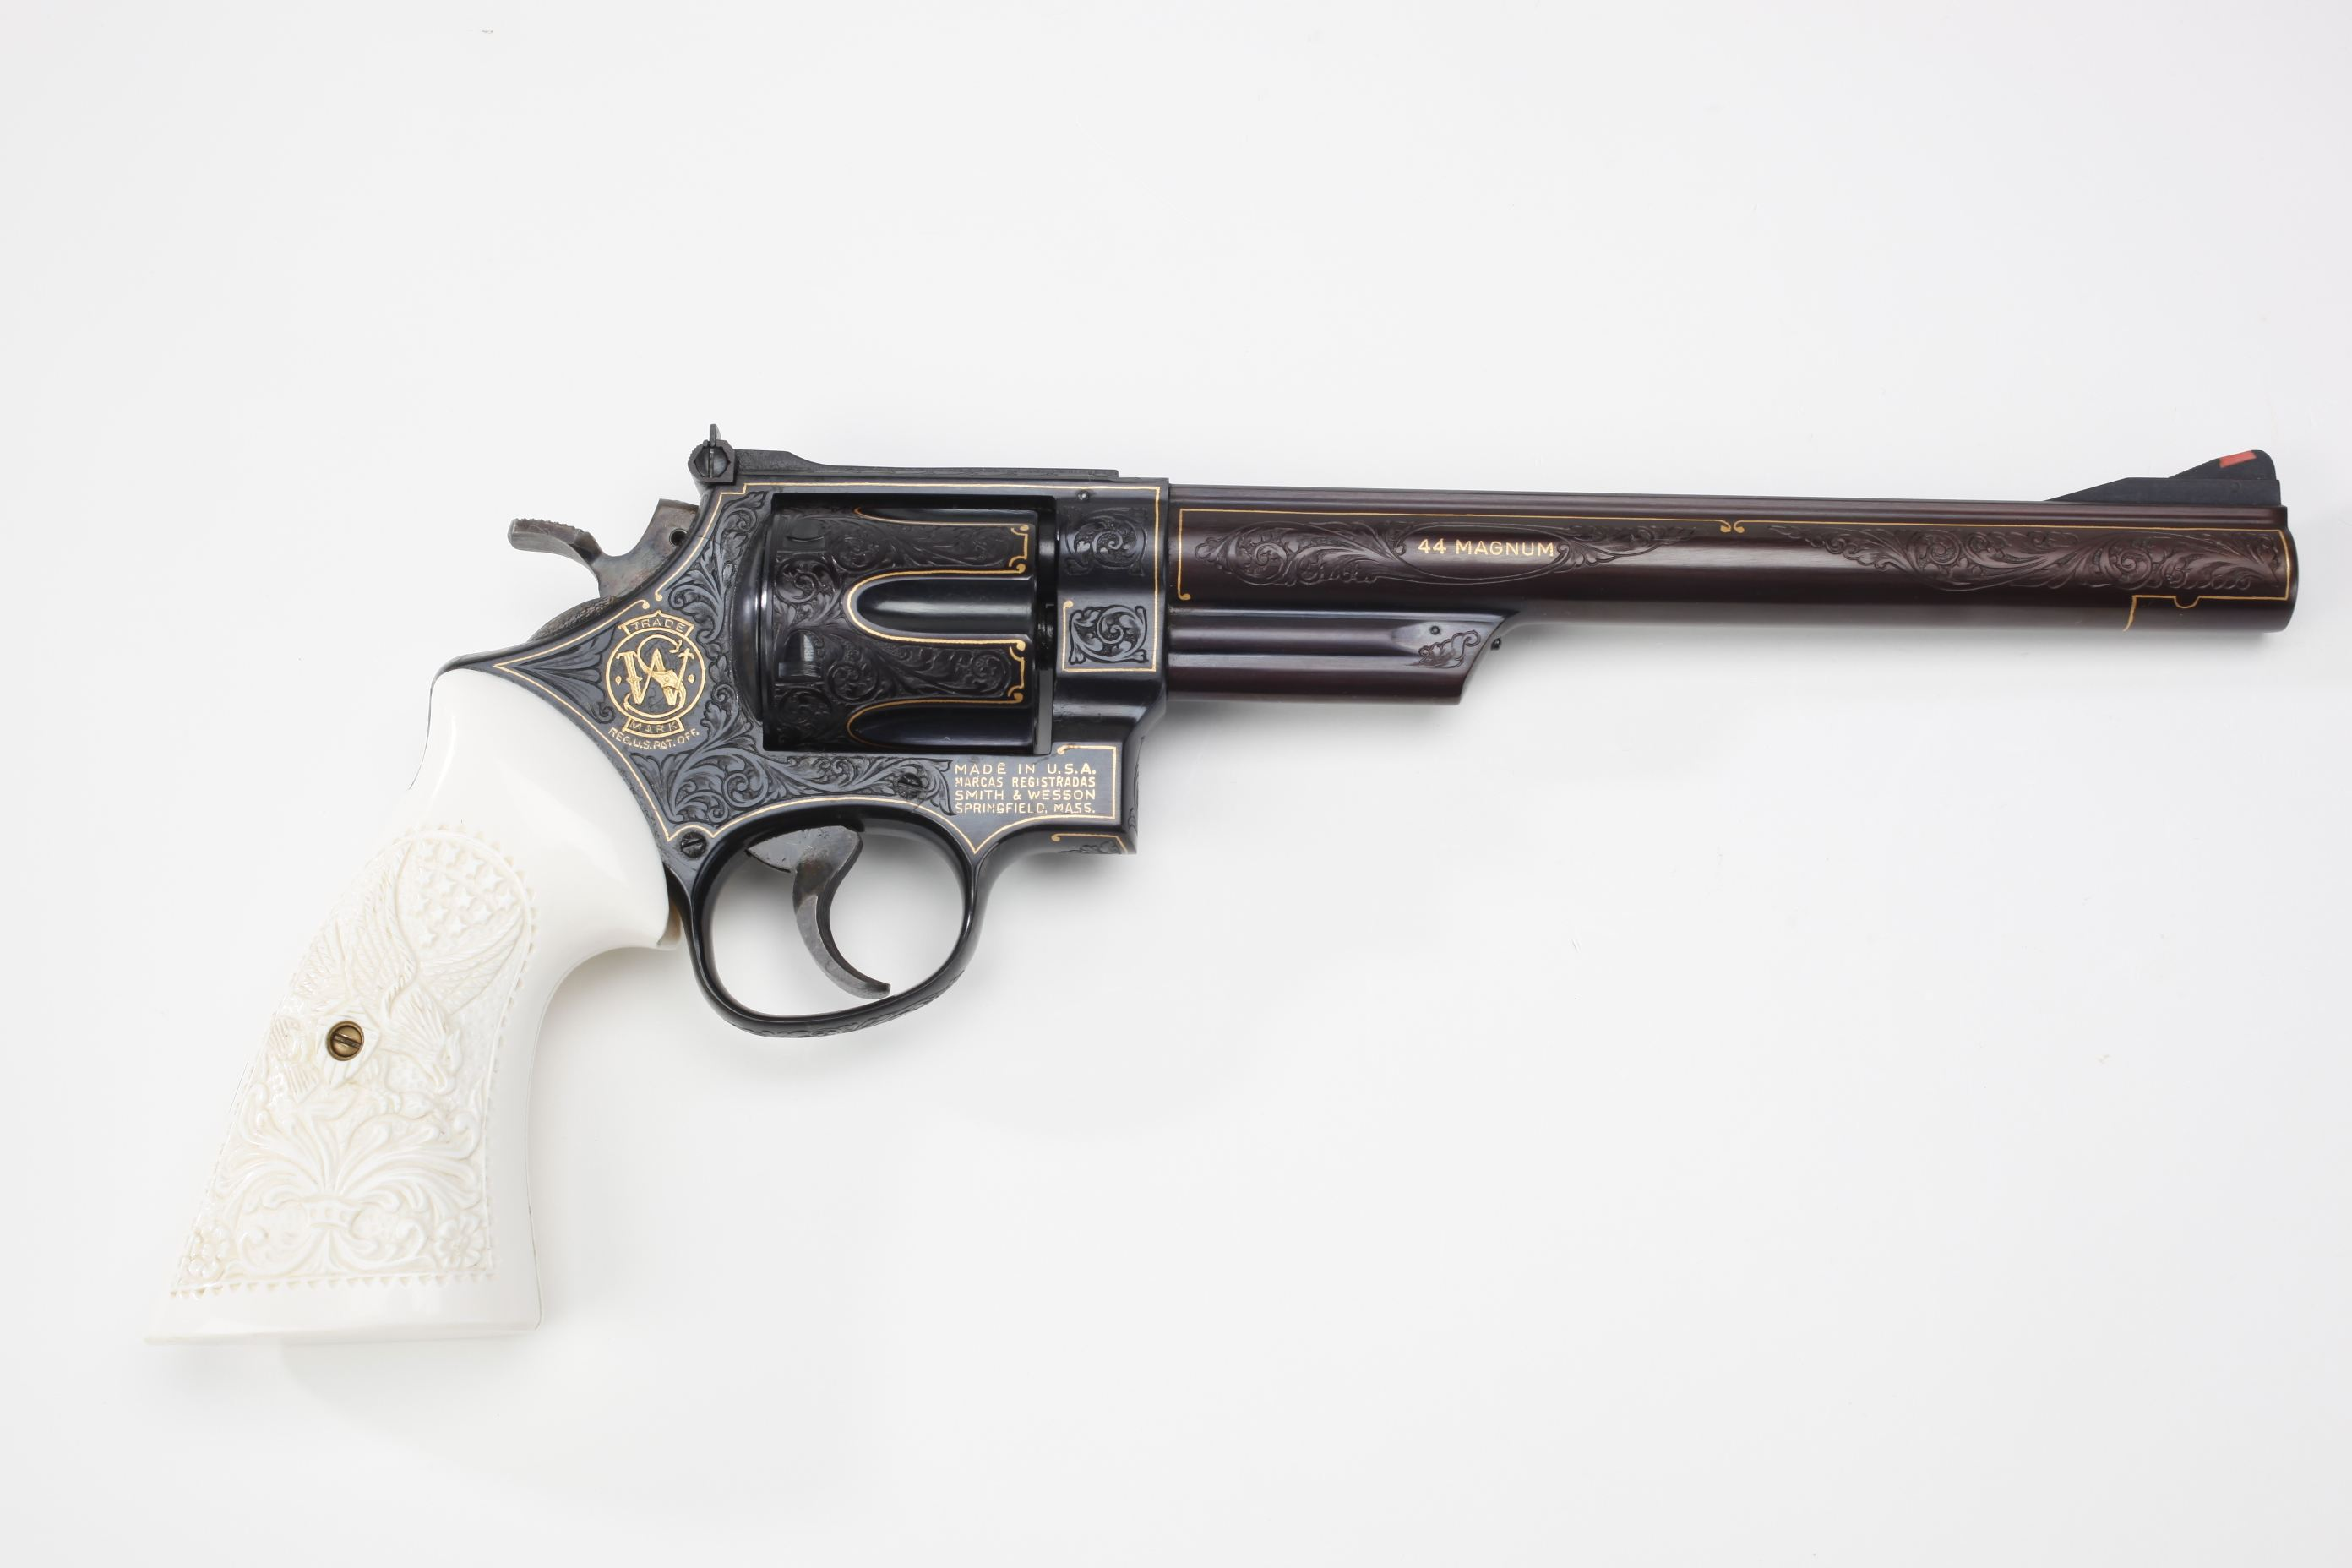 Smith & Wesson Model 29 Double-Action Revolver (1)